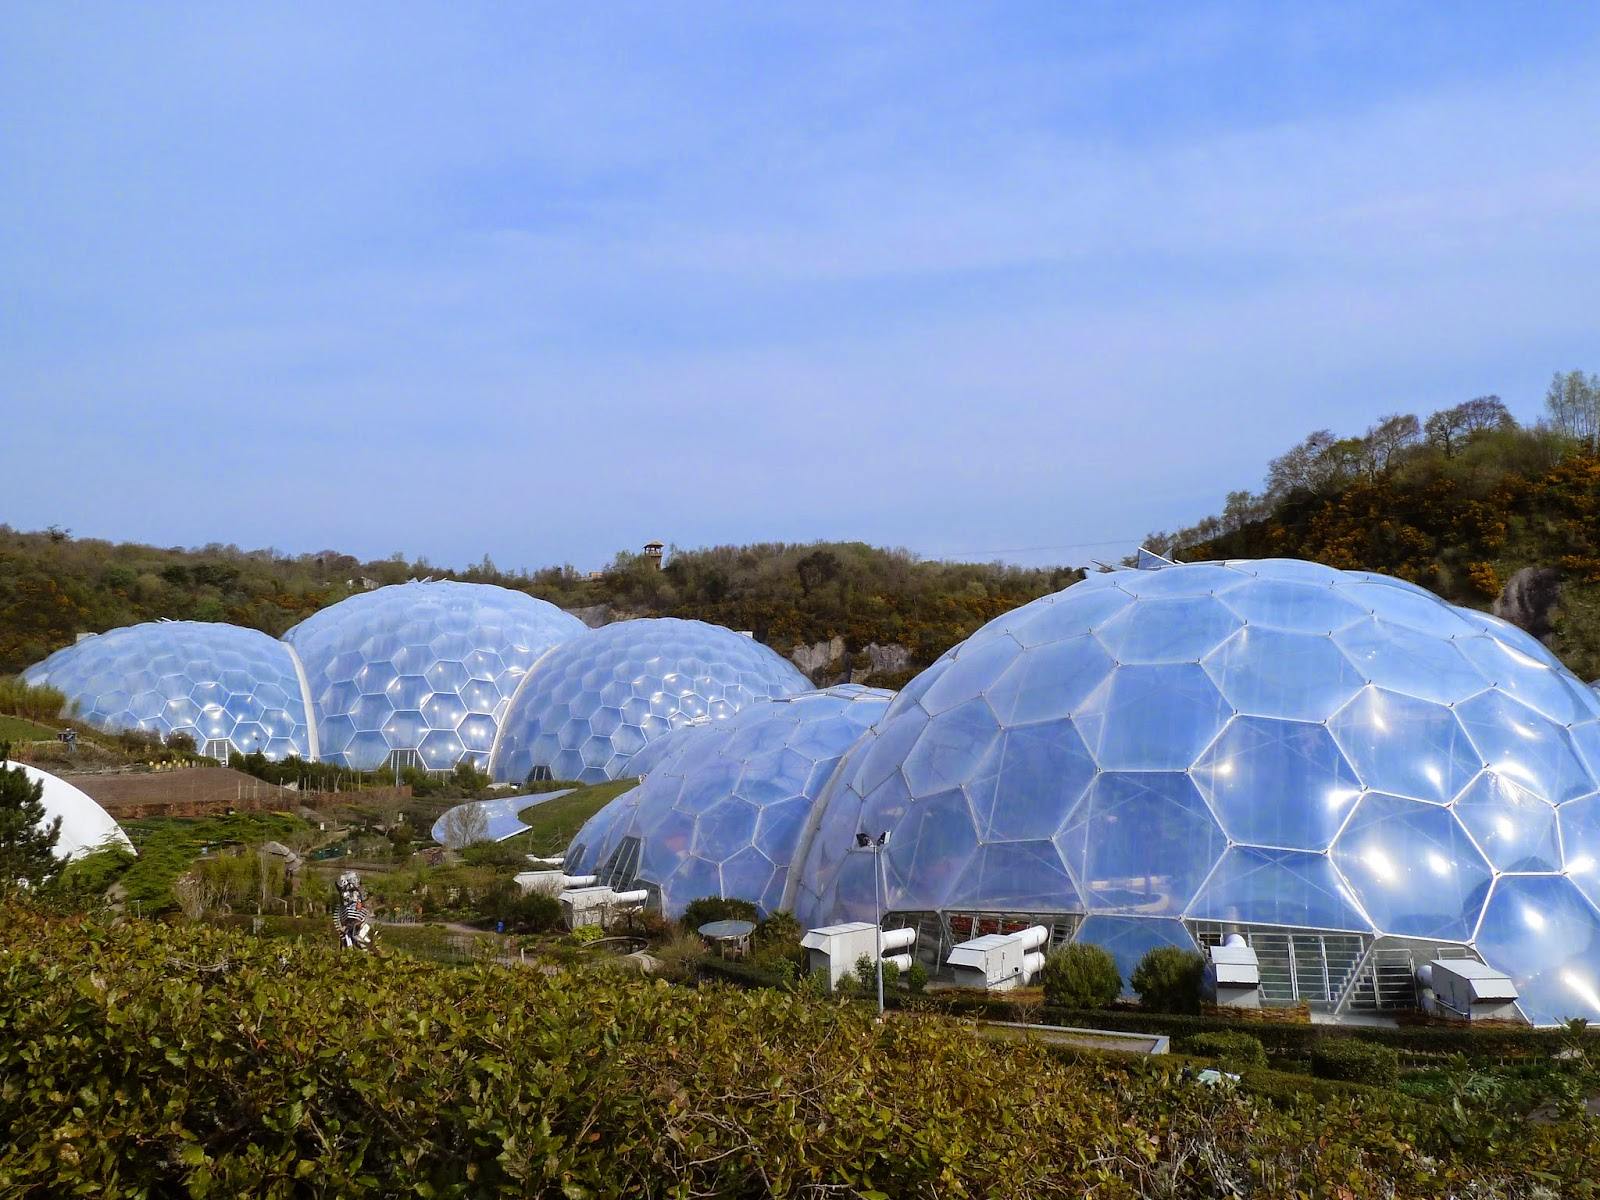 Eden Project - Biome Domes